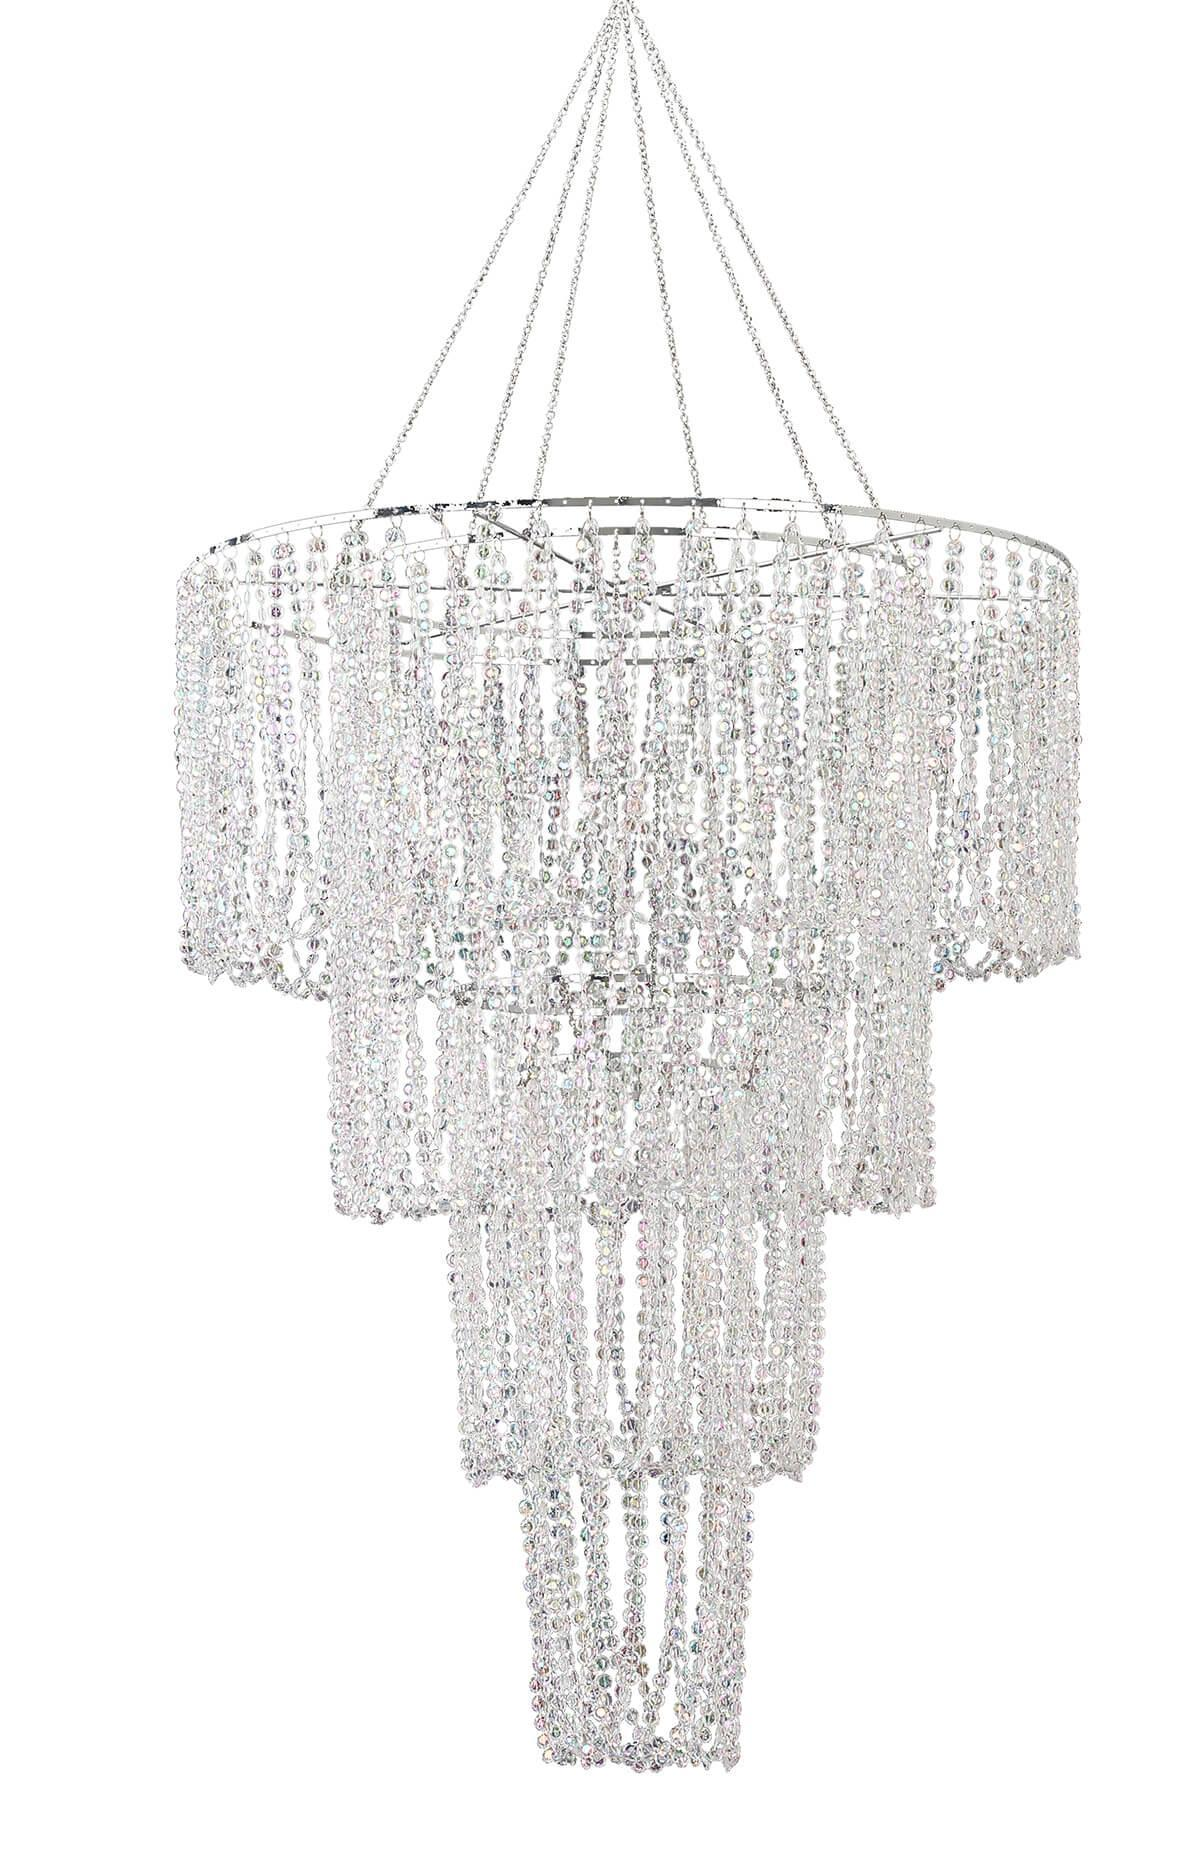 "Crystal Chandelier 31"" Four Tier Includes Lighting Kit"